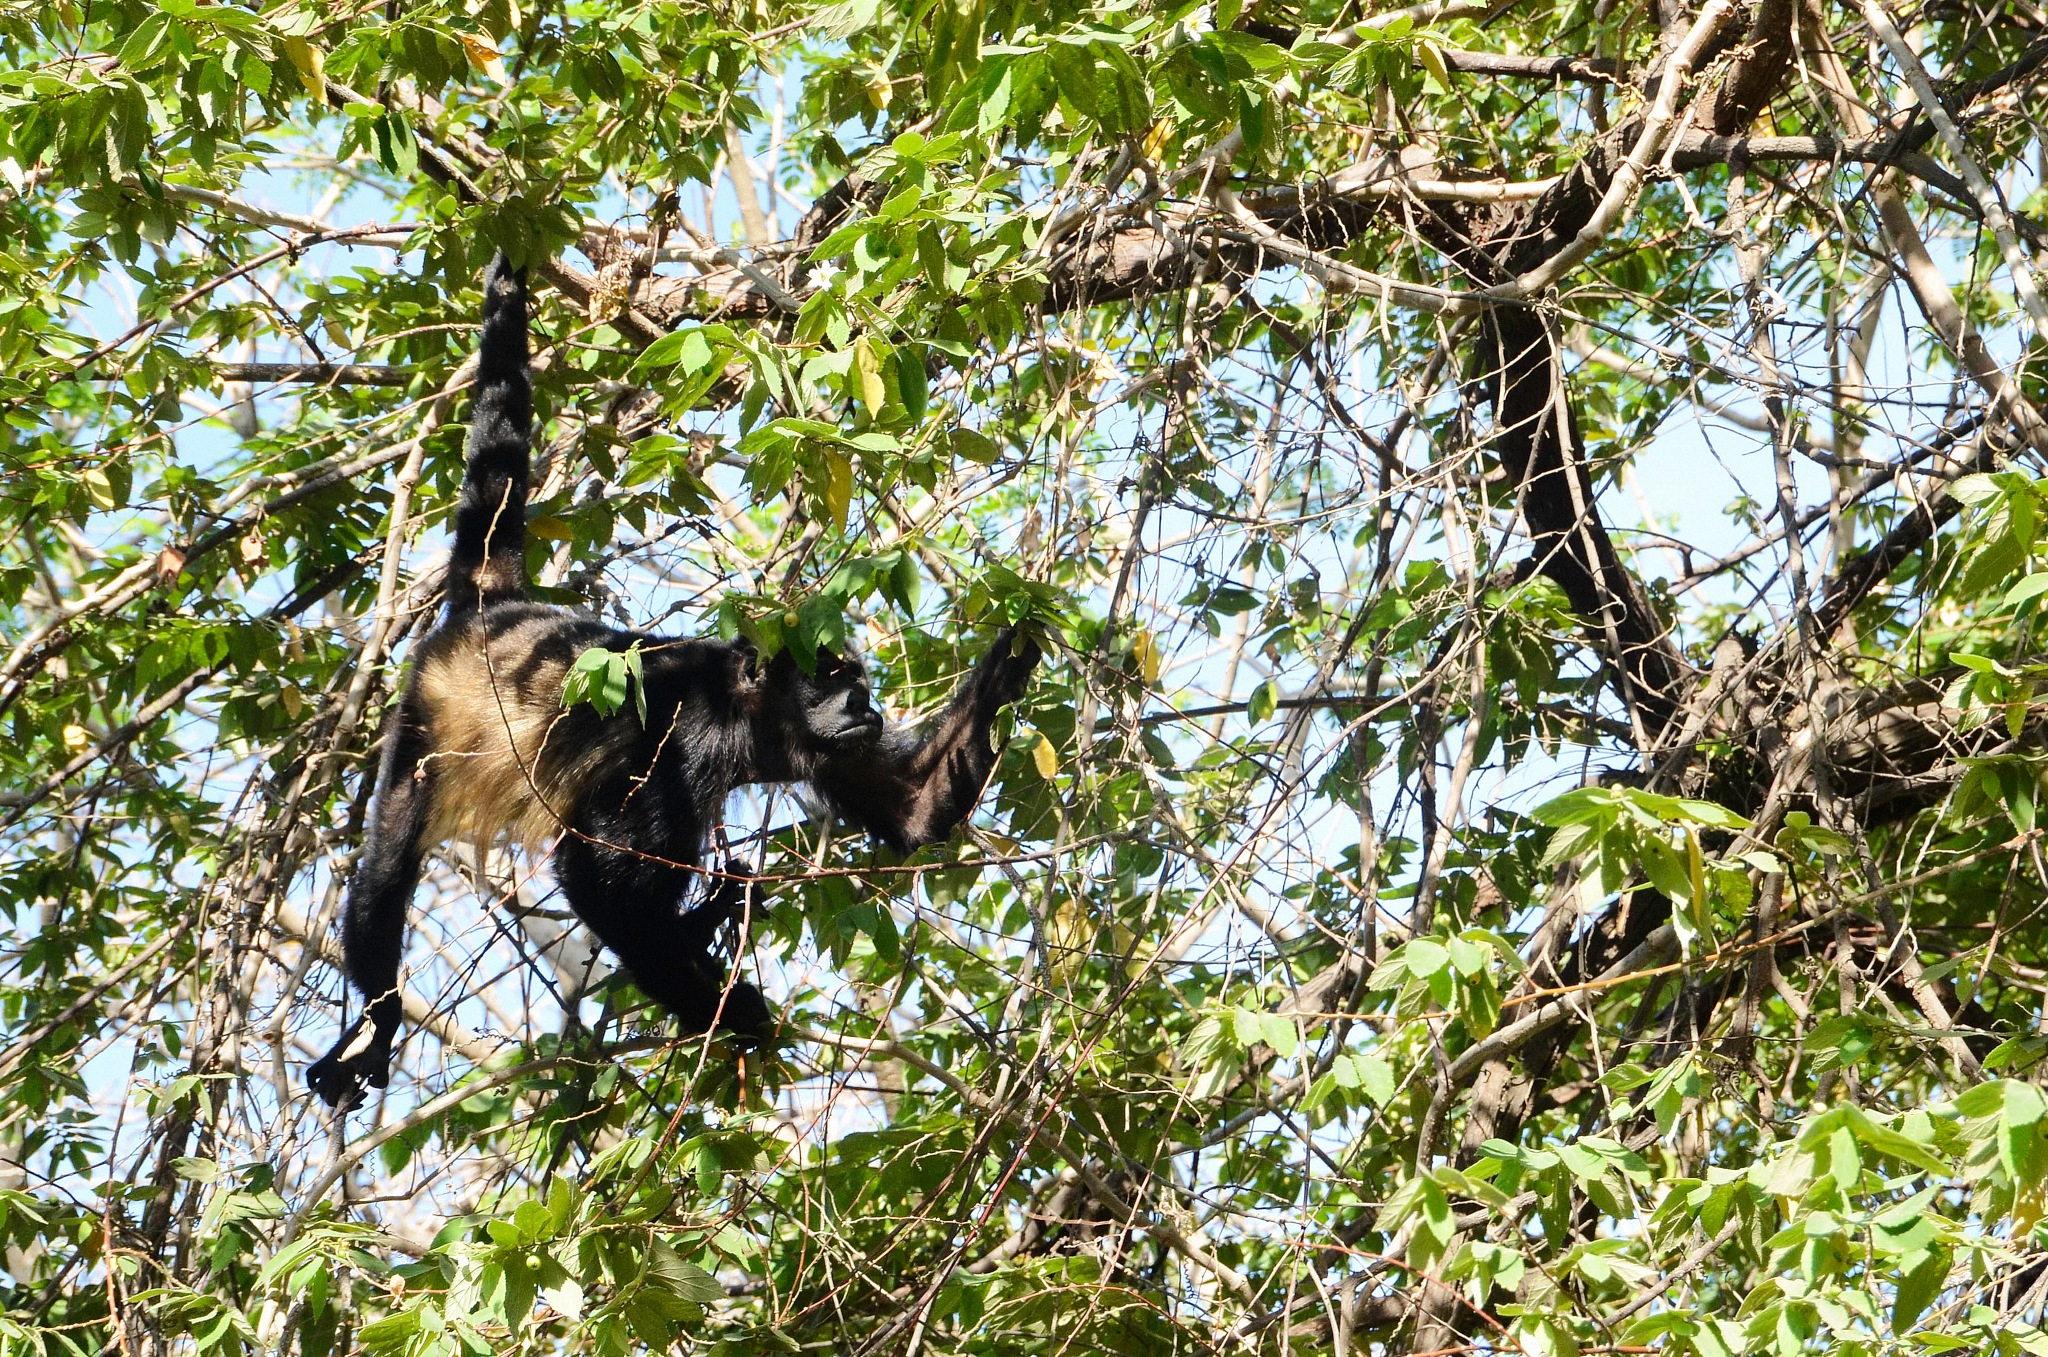 Female Howler Monkey by Smilin' Dog